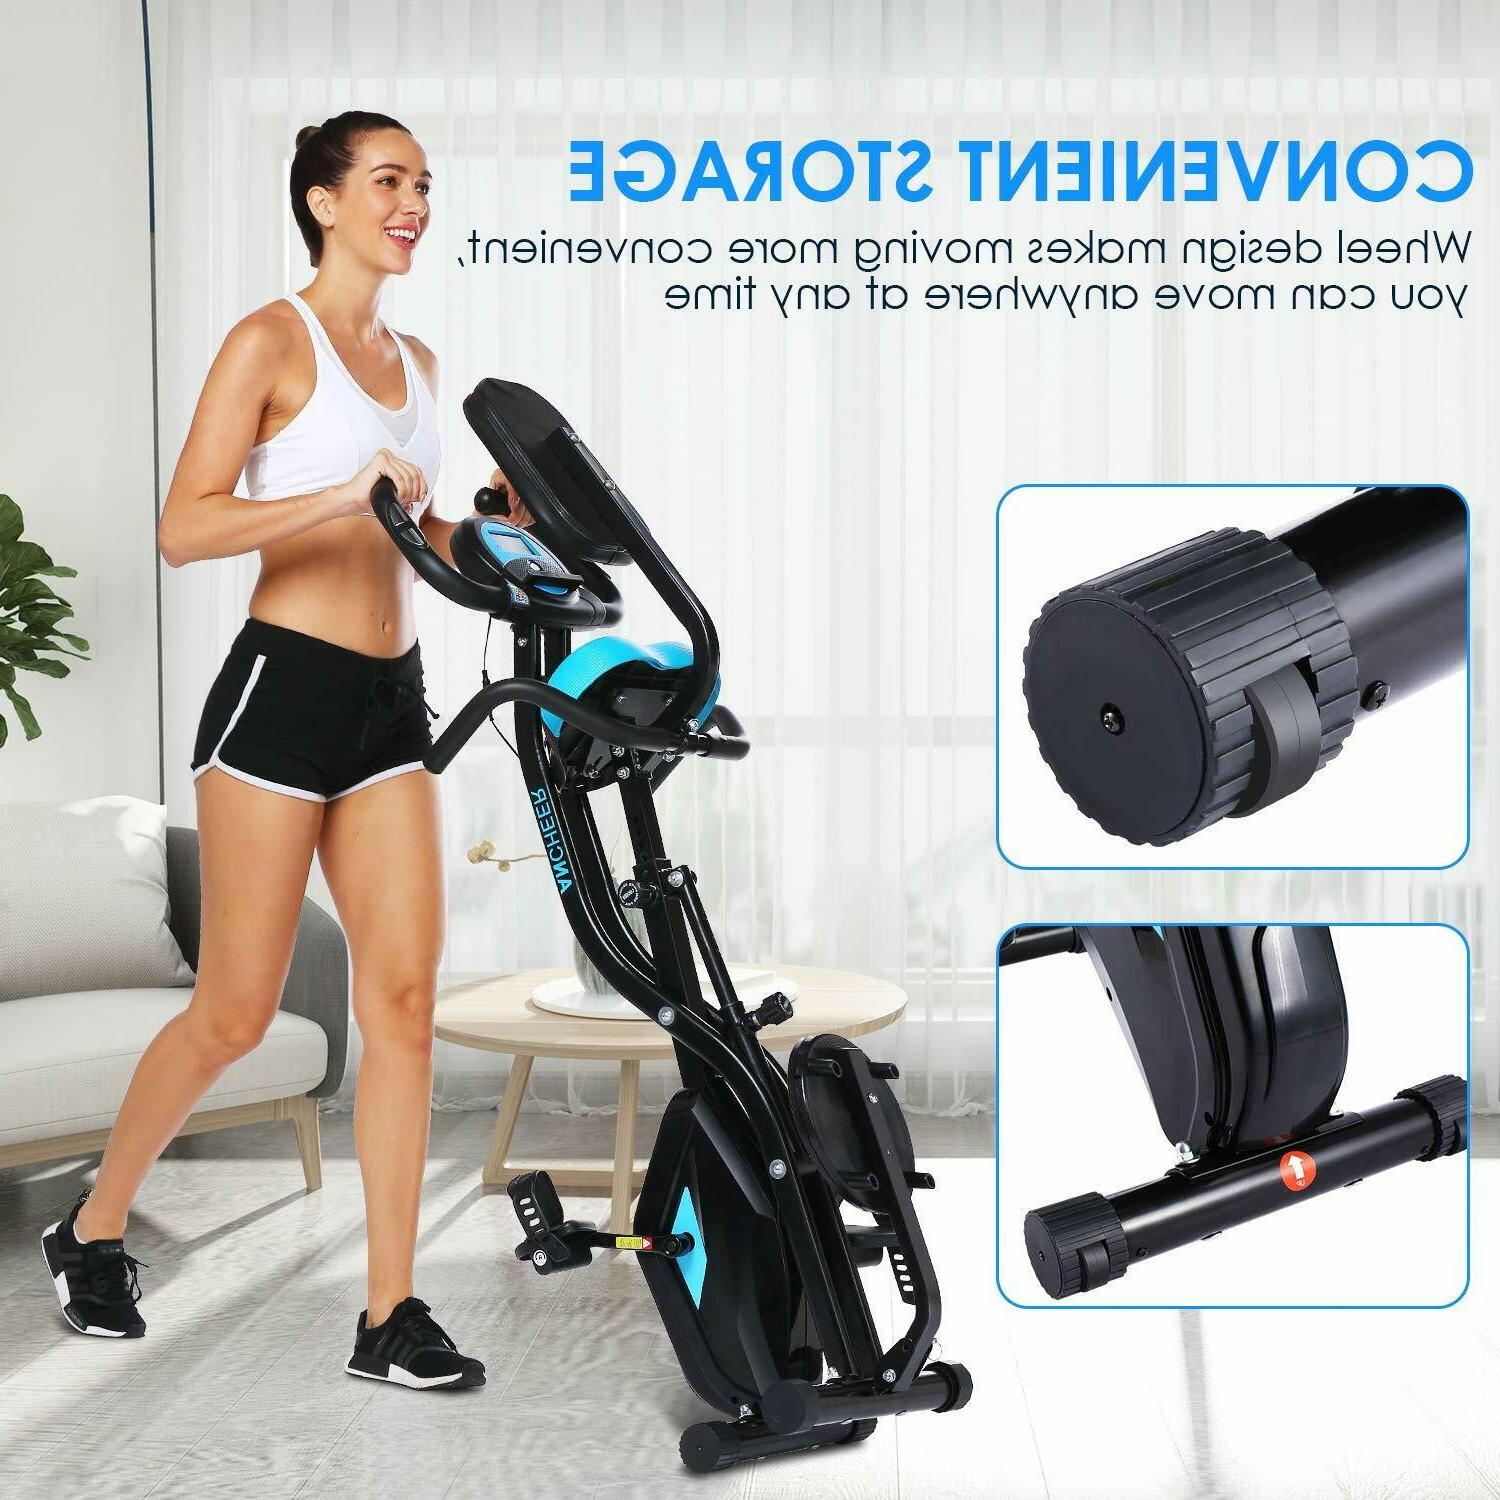 ANCHEER Slim Folding in1 Stationary Cycle